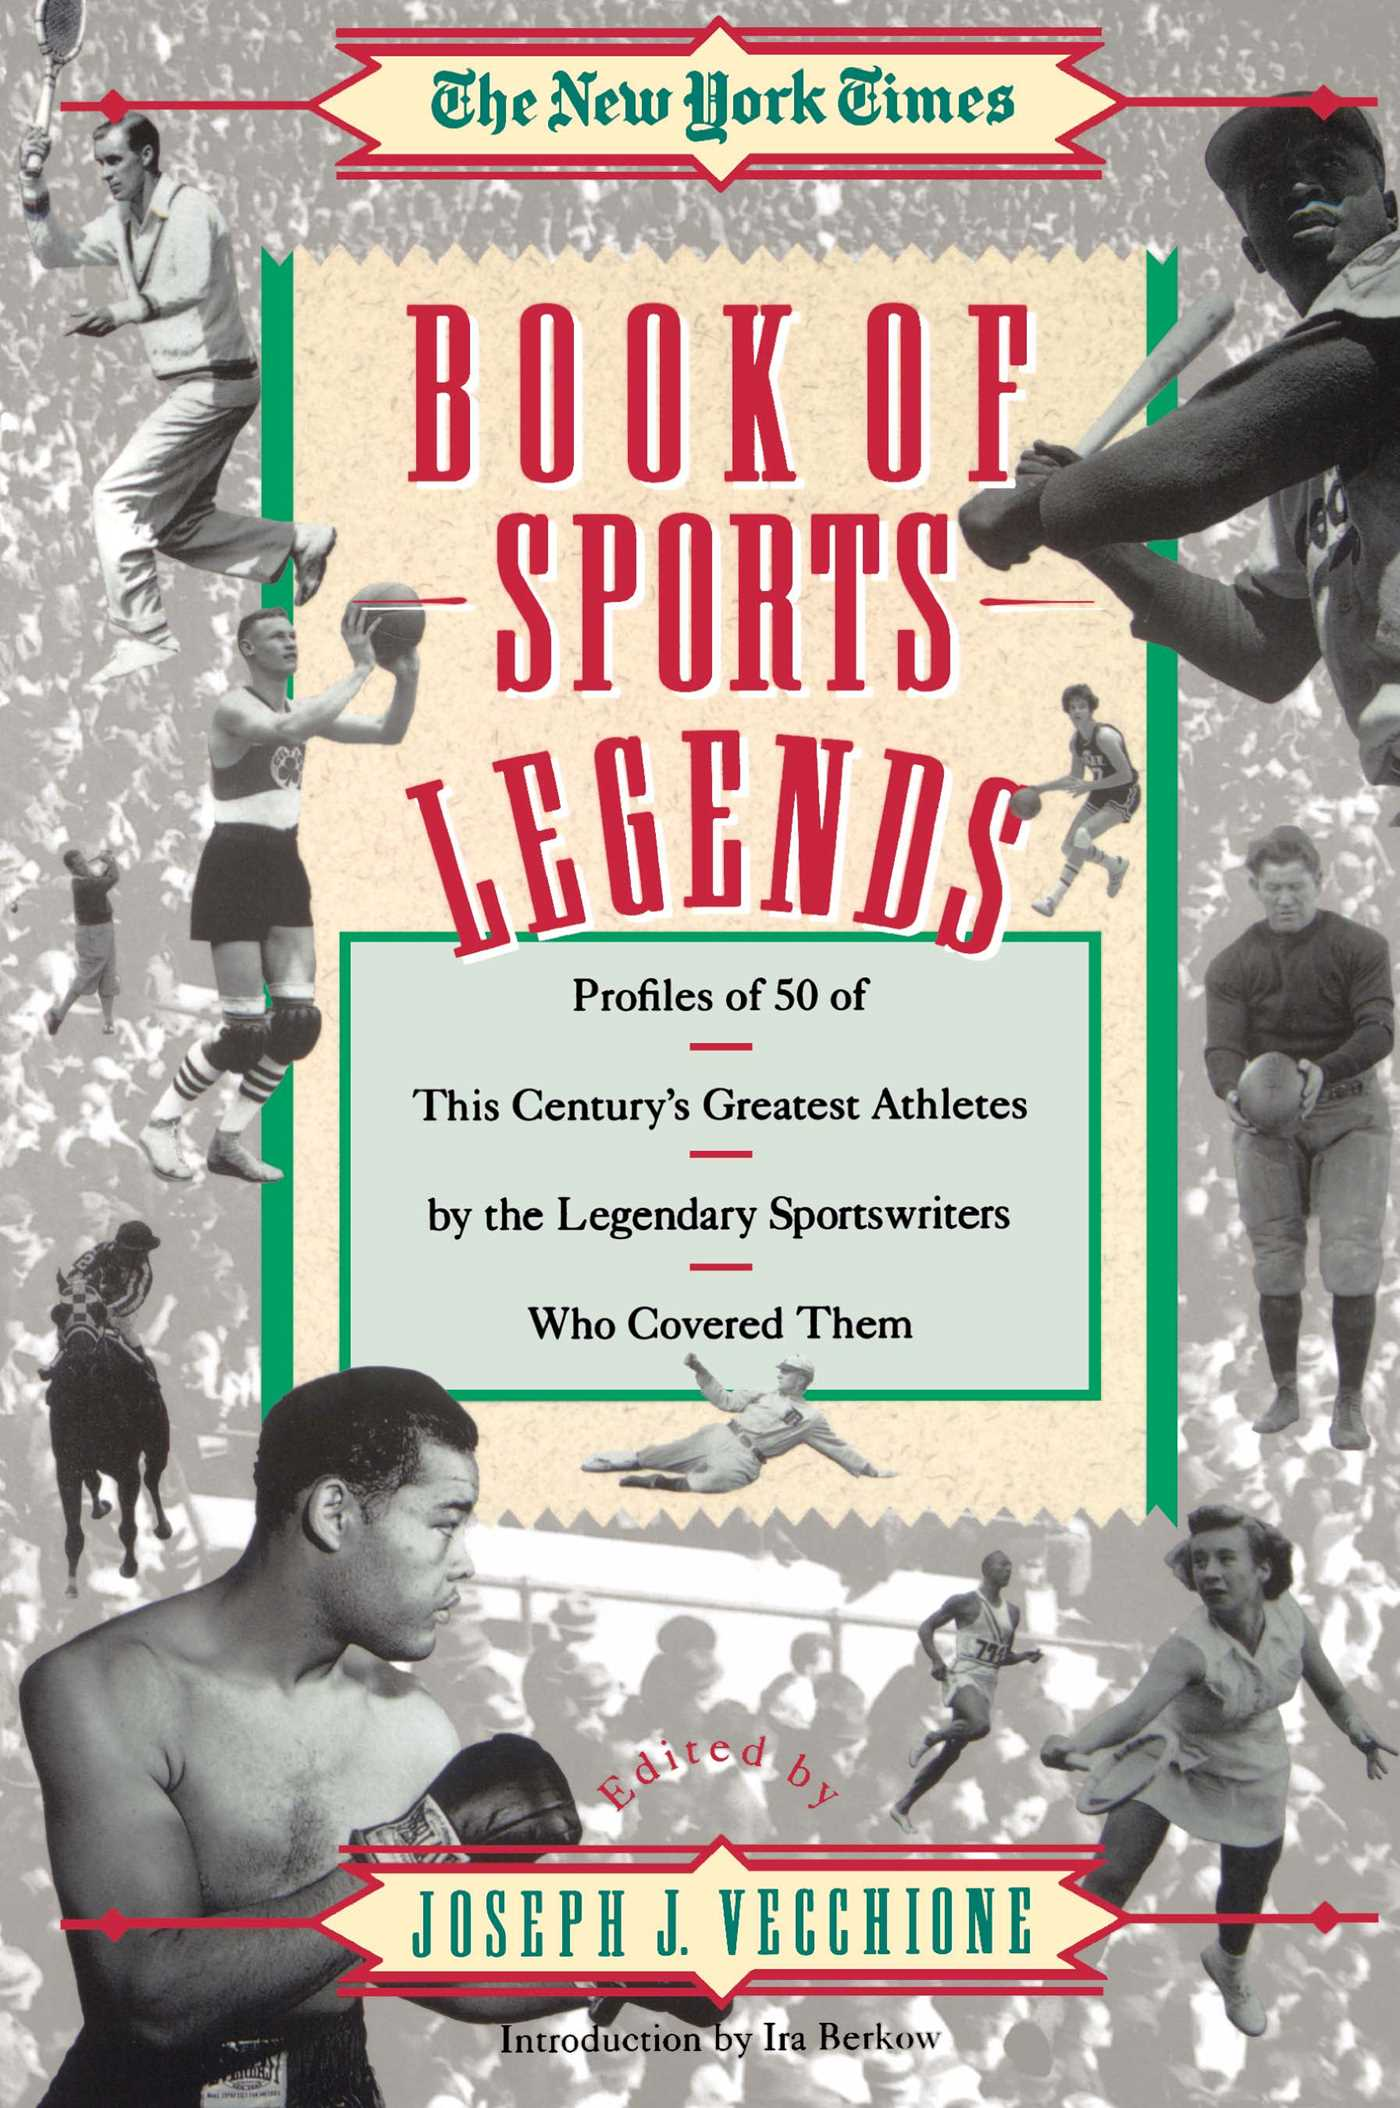 New york times book of sports legends 9780671760397 hr